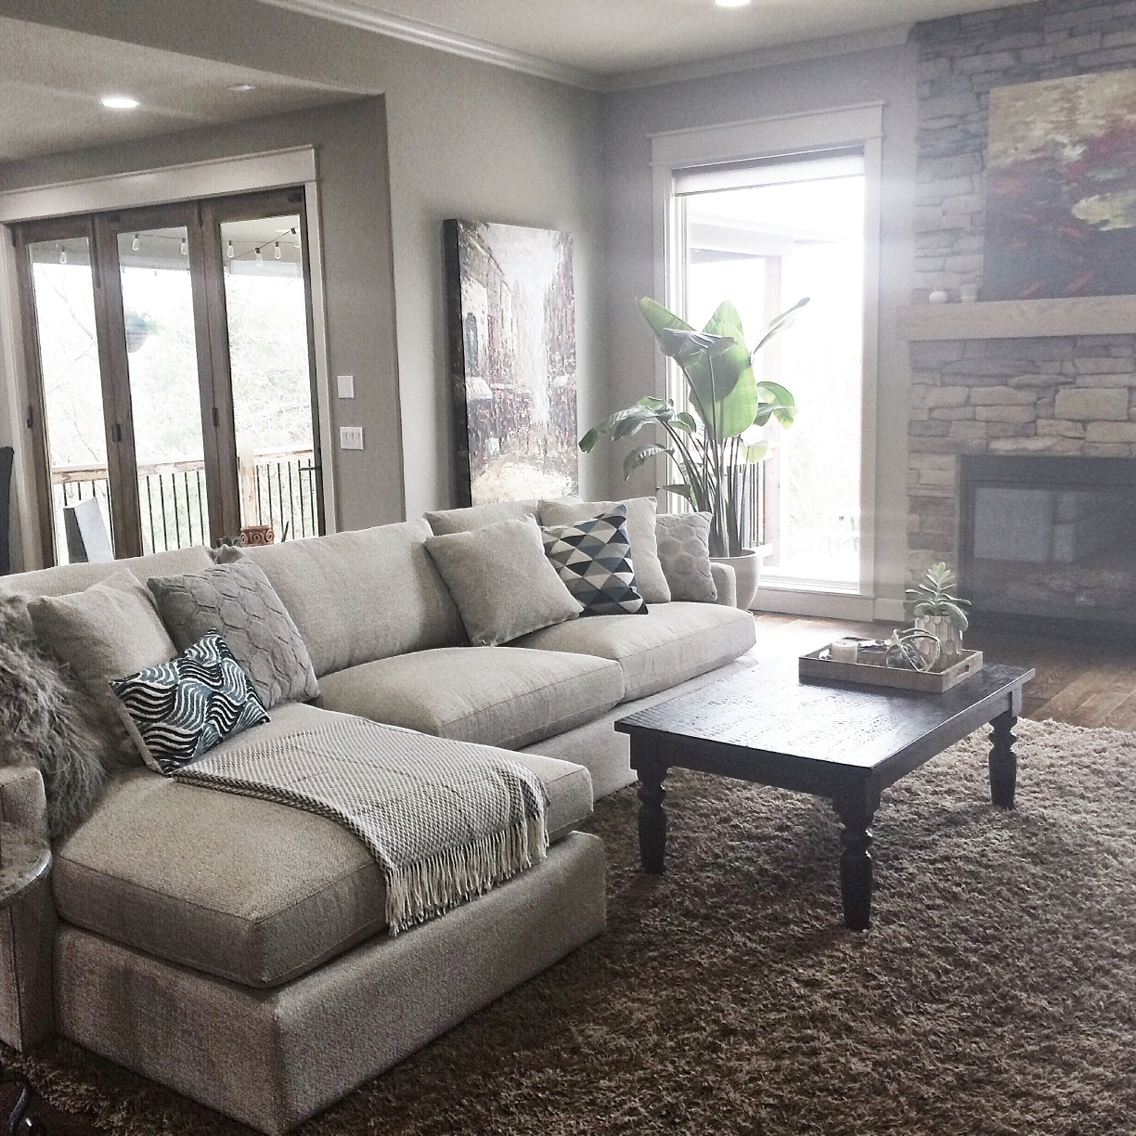 Latest Pottery Barn Table Lamps For Living Room With Regard To Engaging Pottery Barn Living Room Paint Ideas Images Furniture (View 8 of 20)